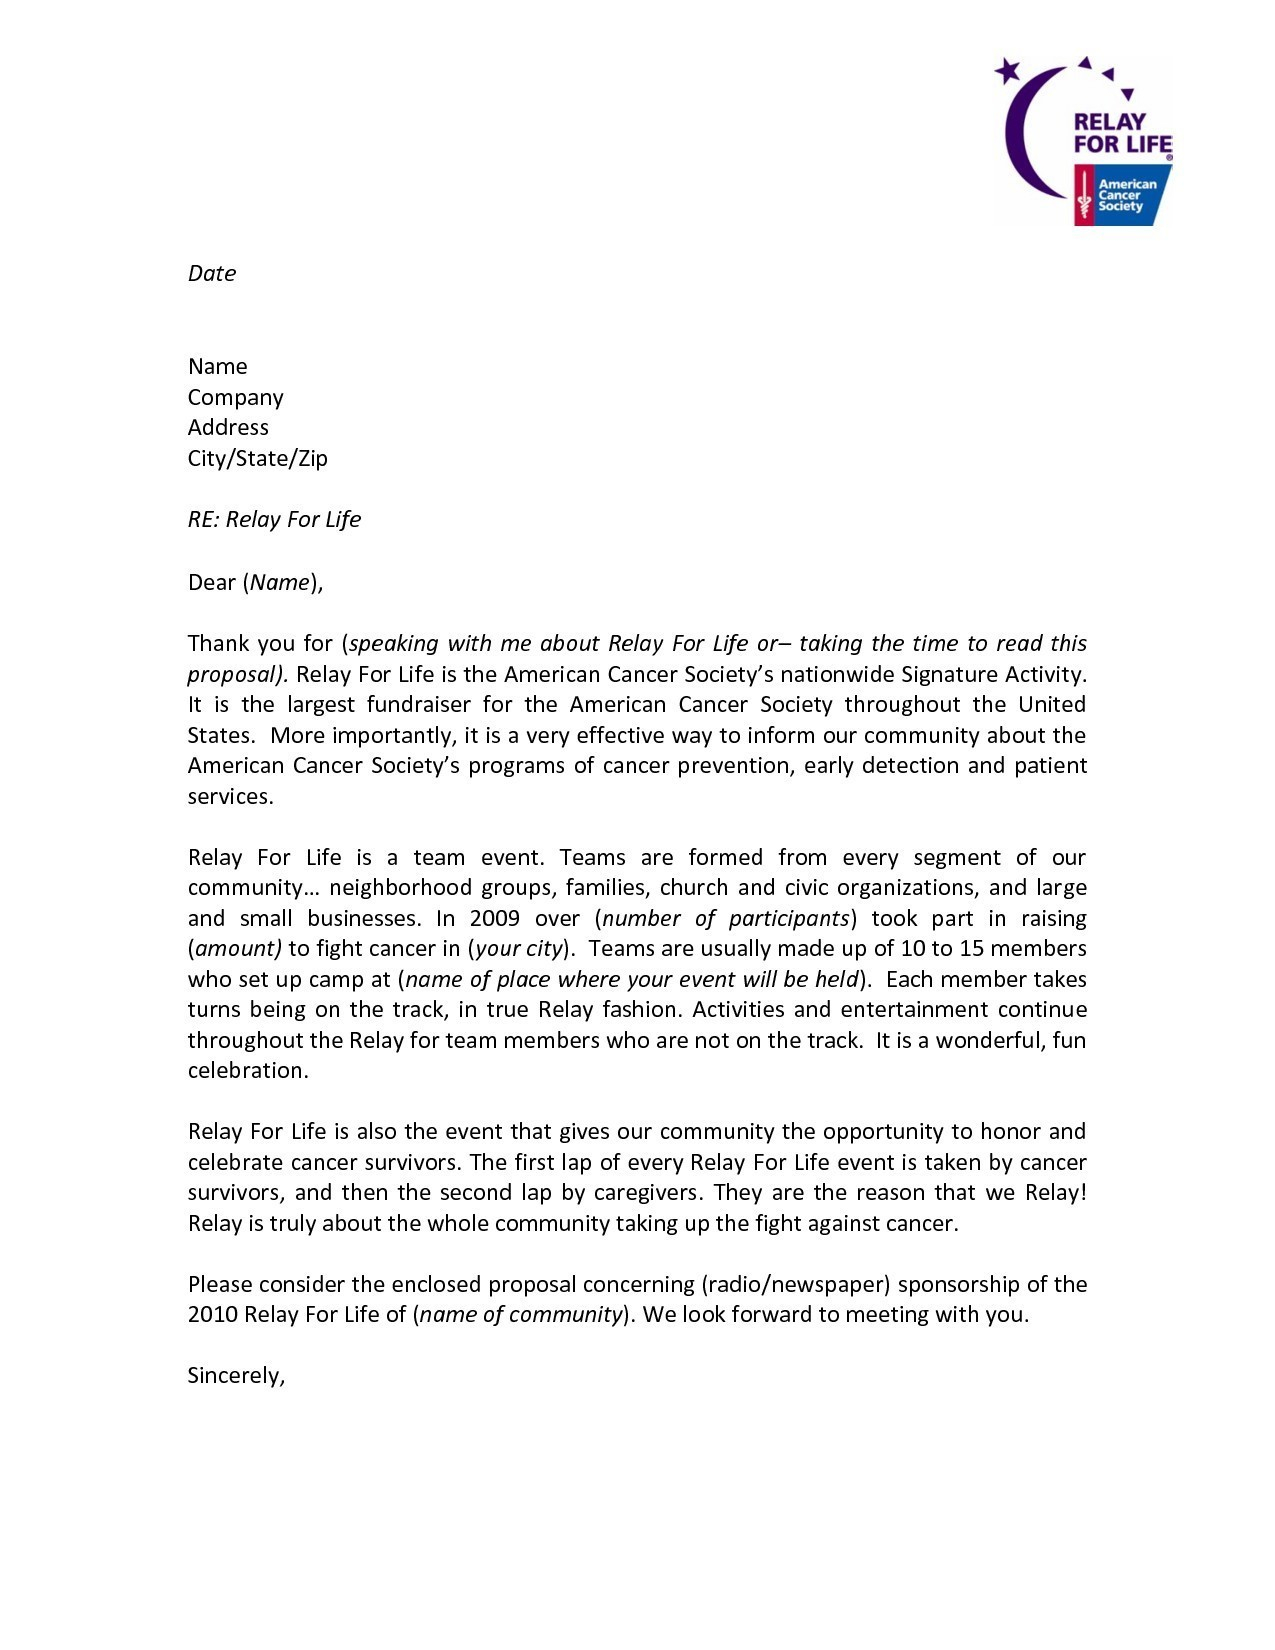 Relay For Life Donation Letter Template Examples Letter Cover